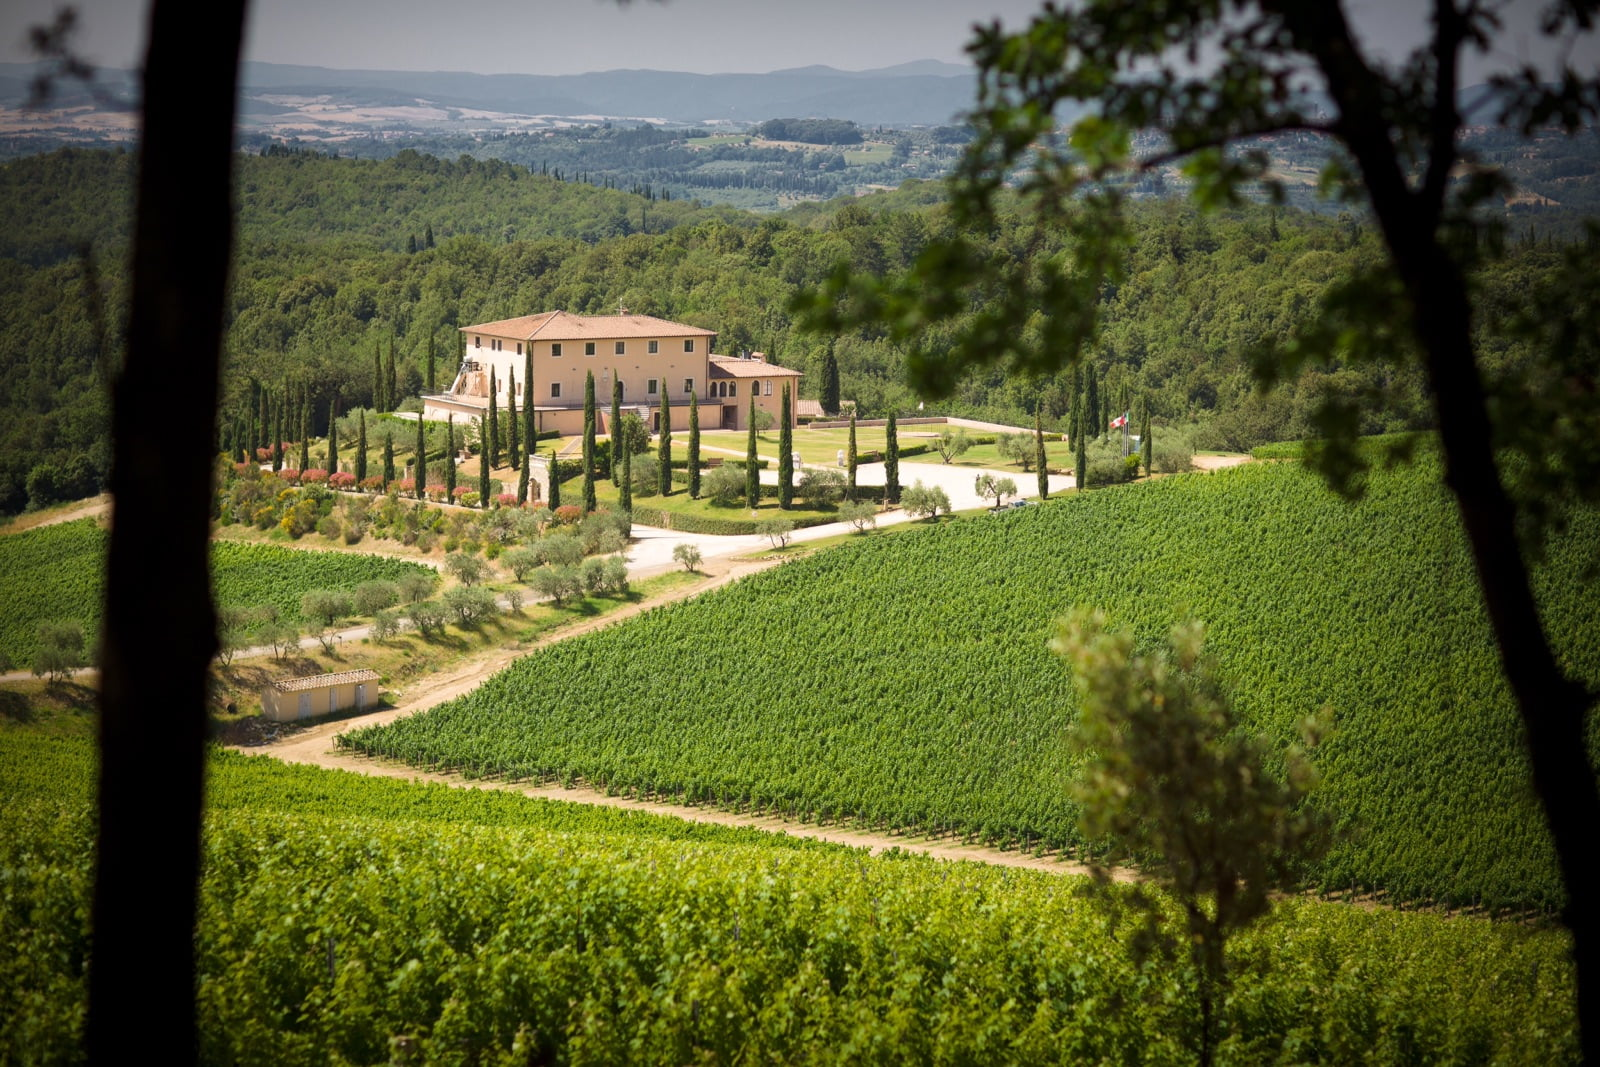 View of villa surrounded by vineyards in Tuscany